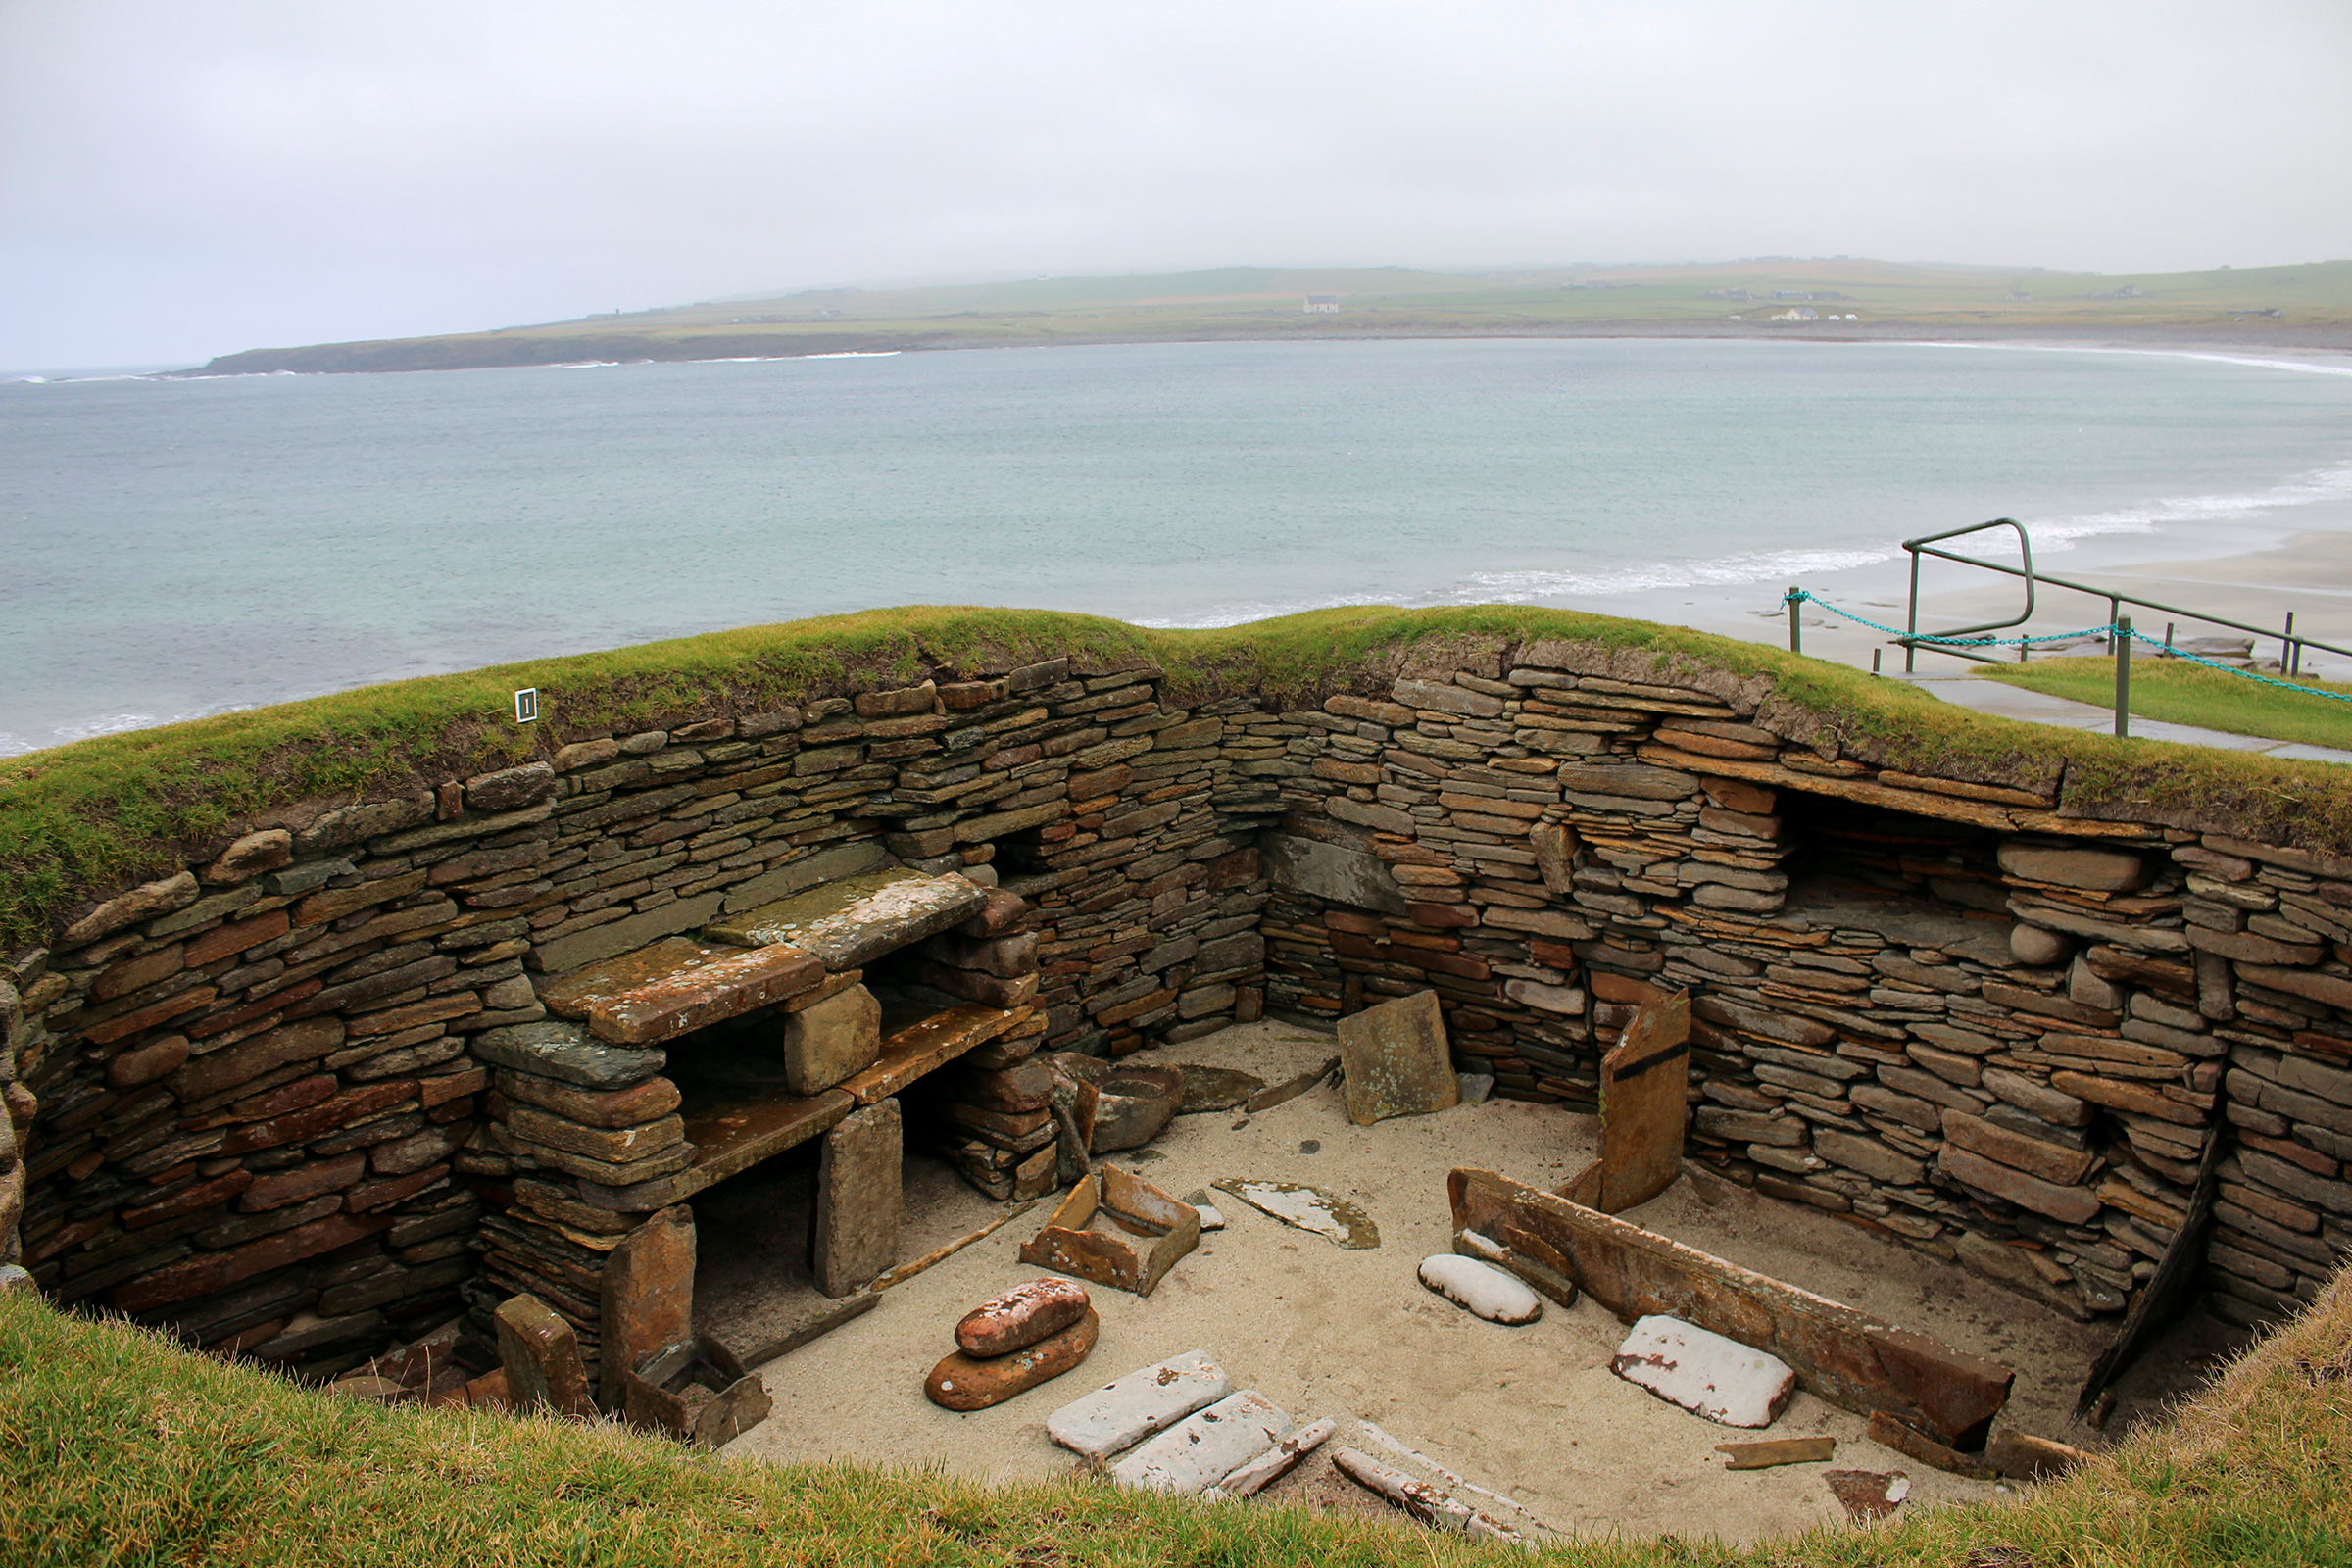 Neolithic Buildings are seen at Skara Brae in the Orkney Islands, Scotland on Sep. 25, 2019